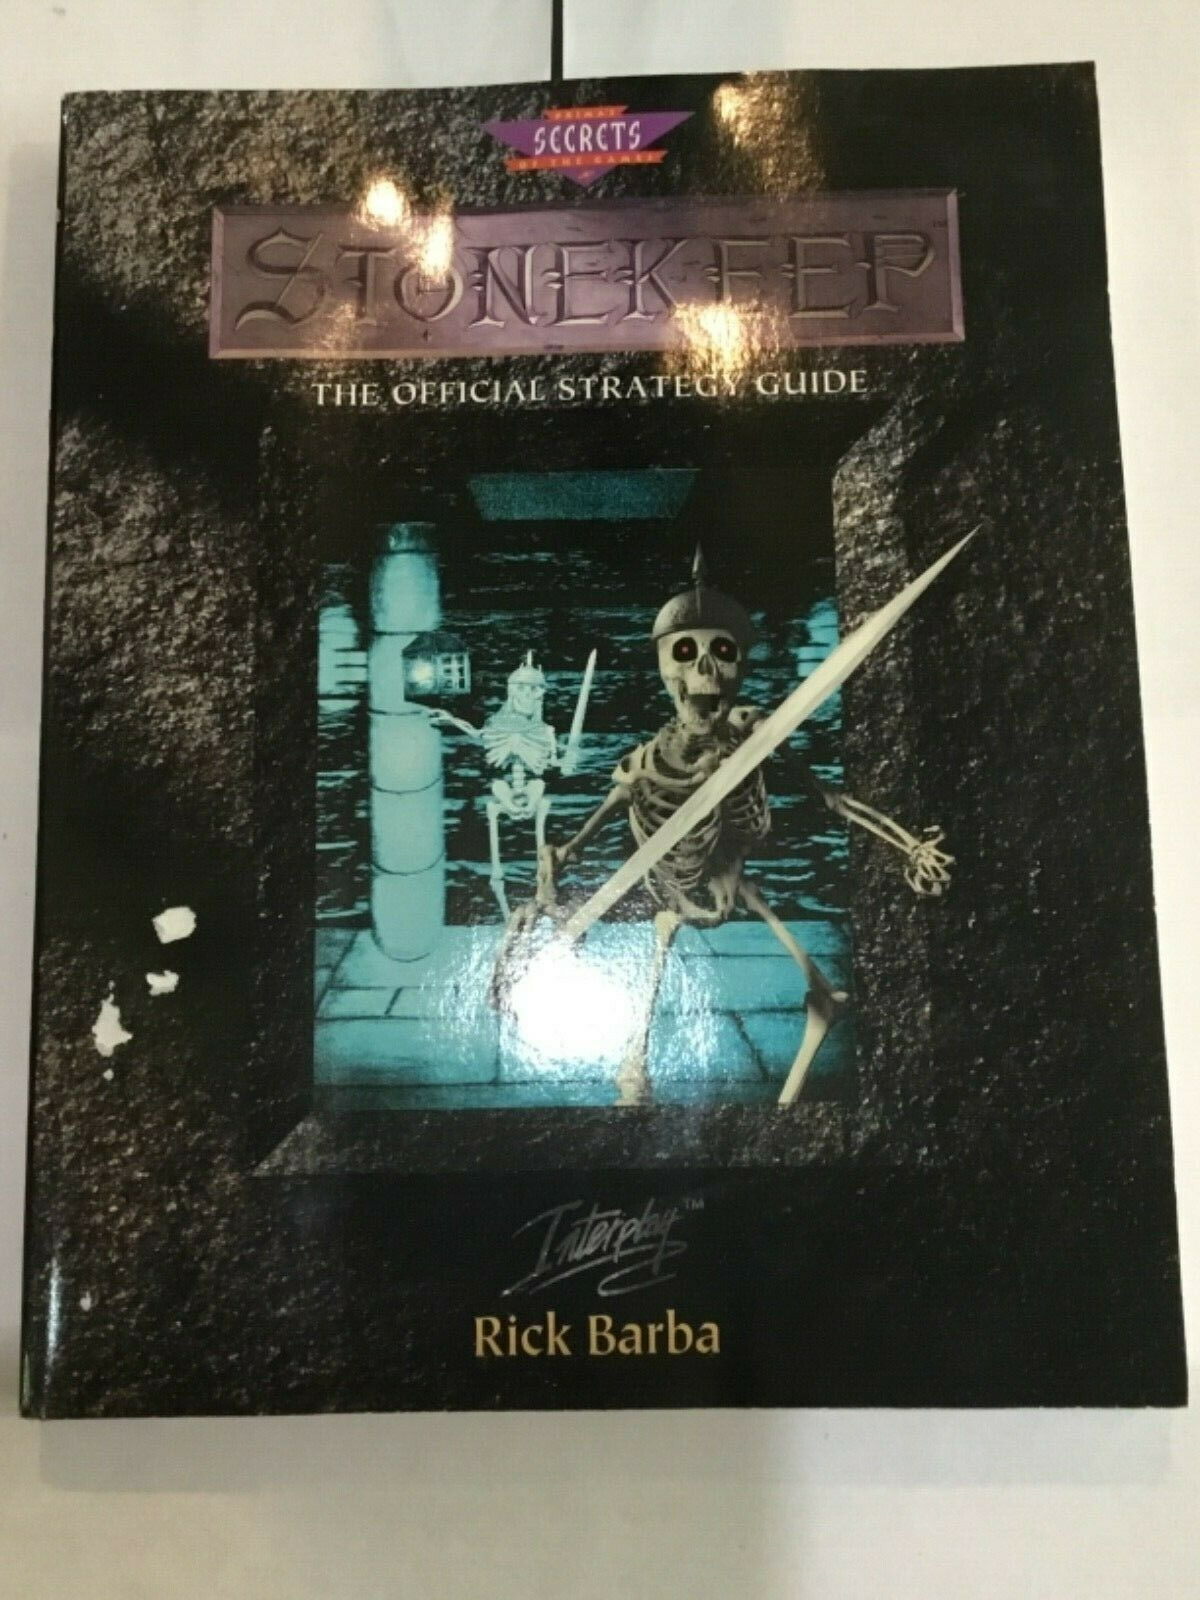 1995 STONEKEEP OFFICIAL STRATEGY GUIDE (SECRETS OF THE GAME) BY RICK BARBA